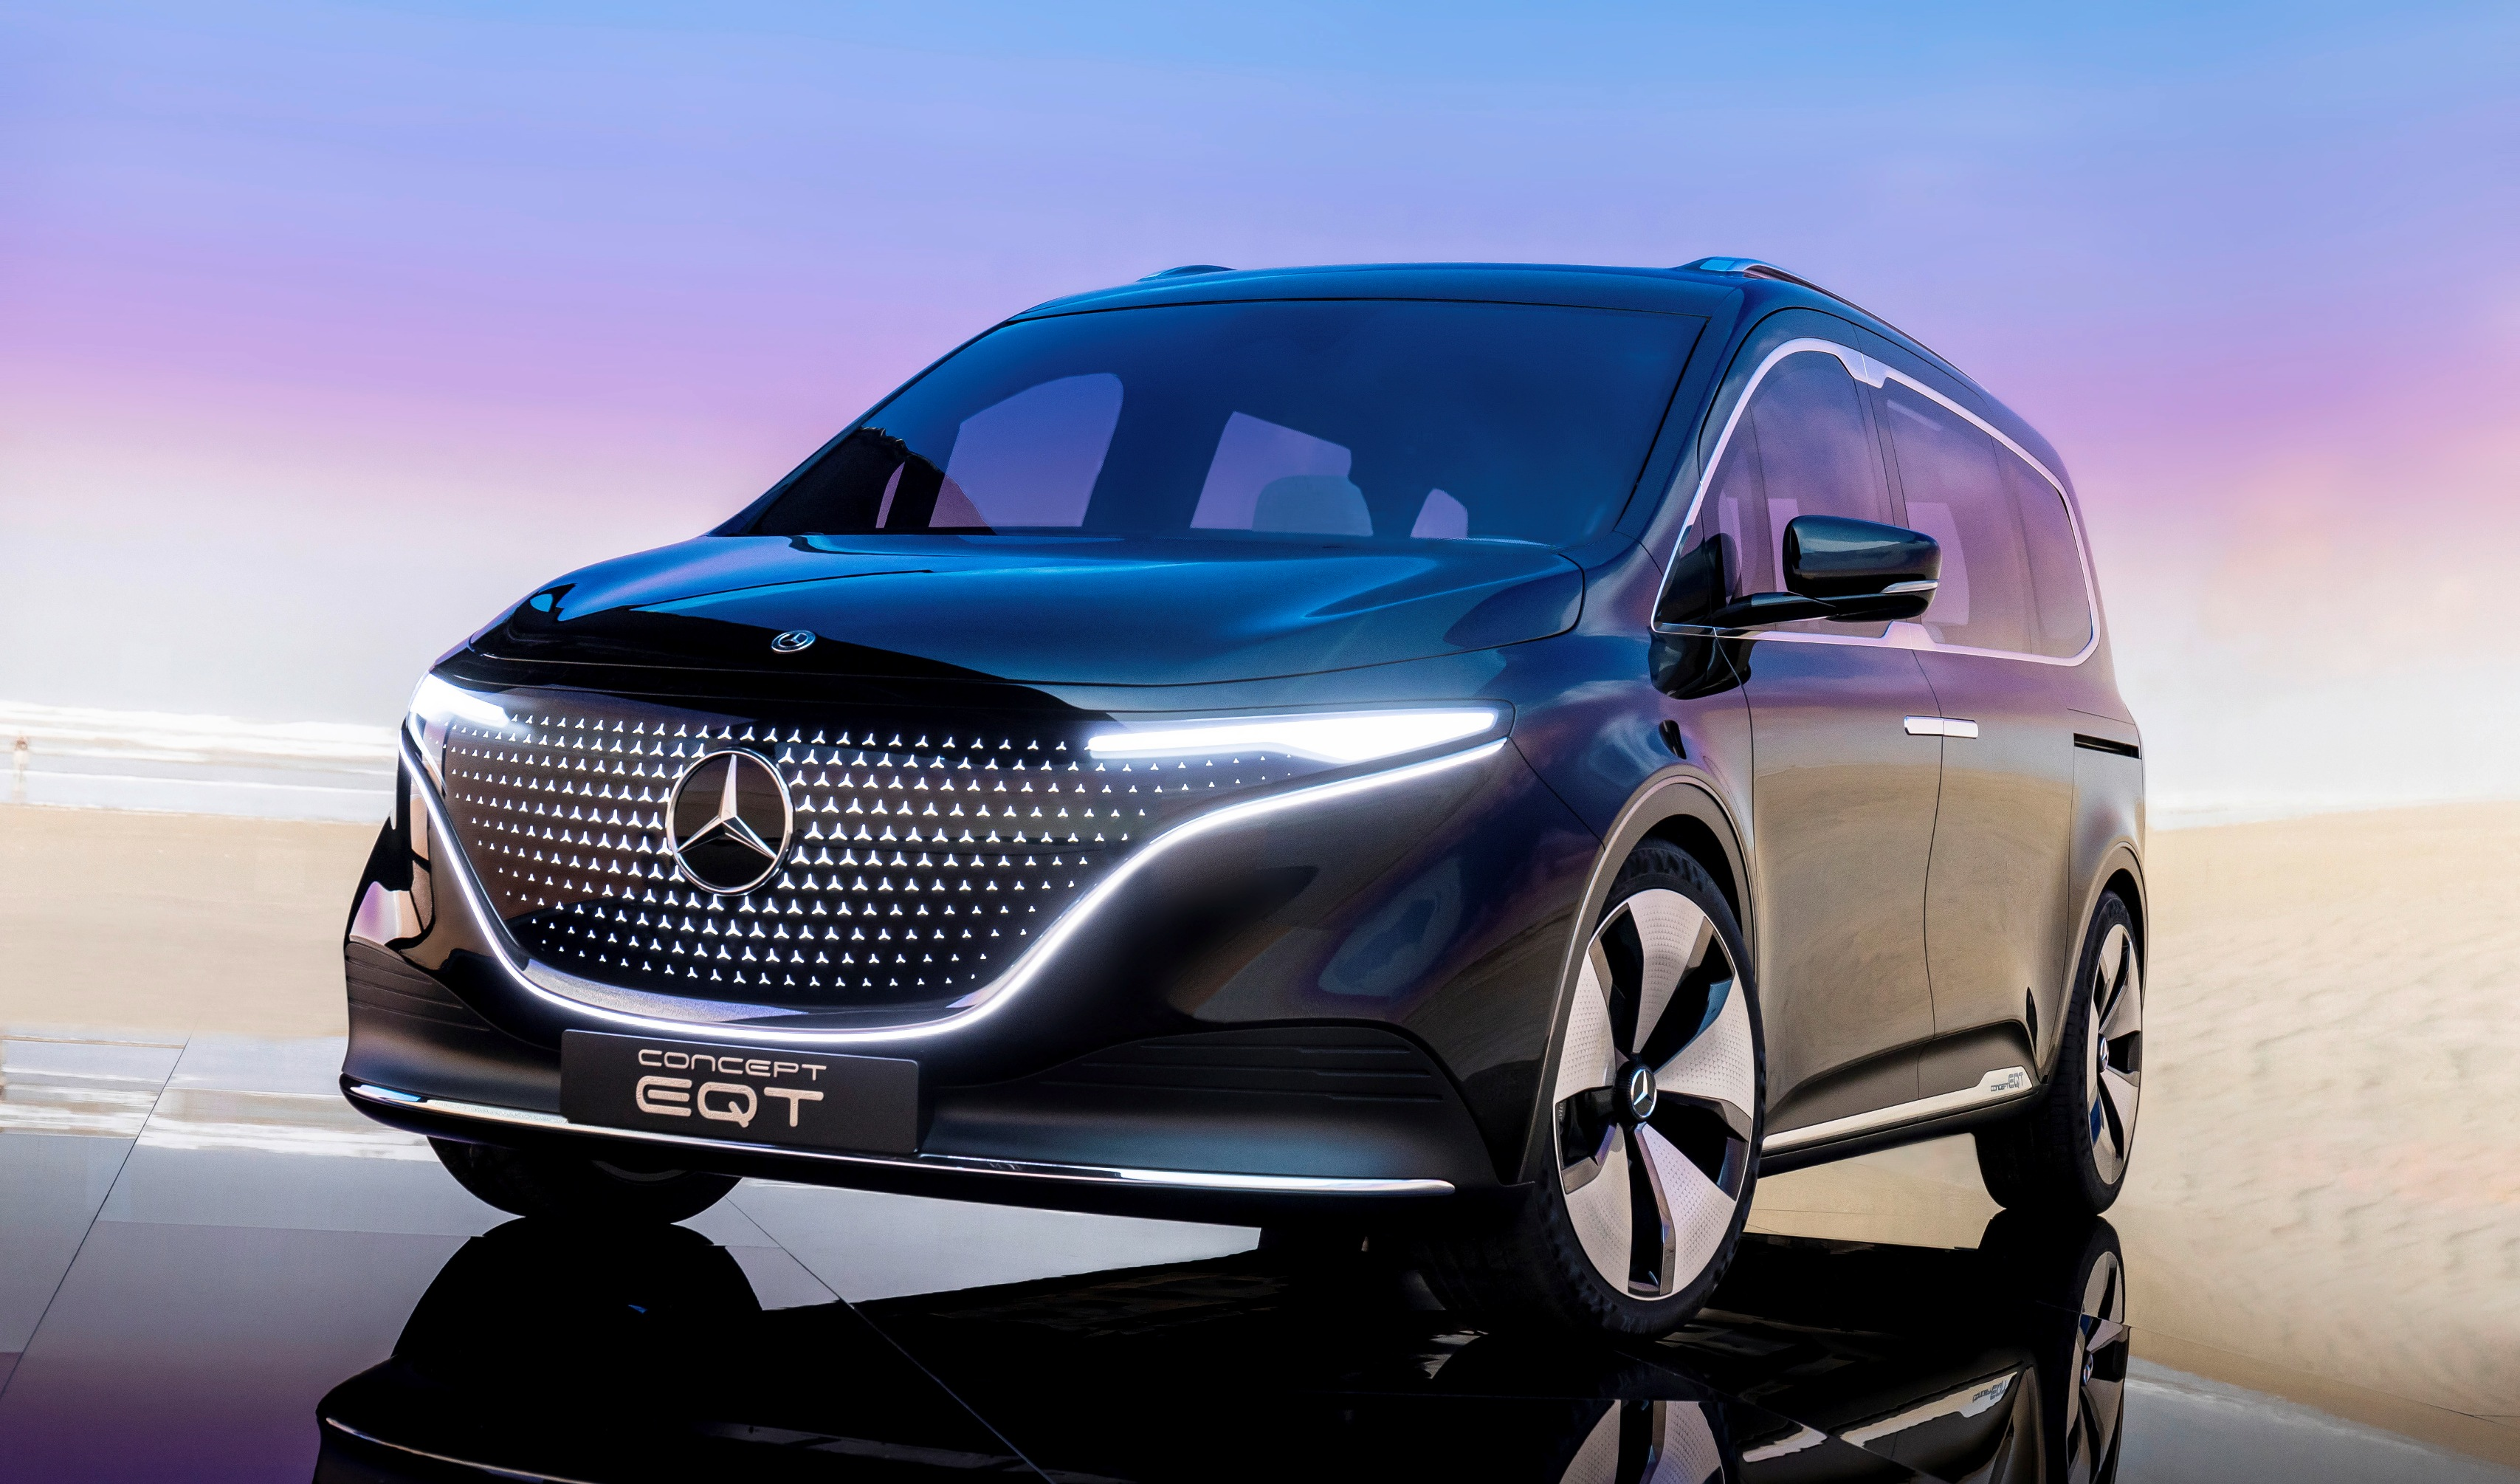 The look of the electric MPV is characterised by the black panel front with LED headlights, the mirror-turned 21-inch alloy wheels, the panoramic roof and a light strip that connects the front and rear light clusters.